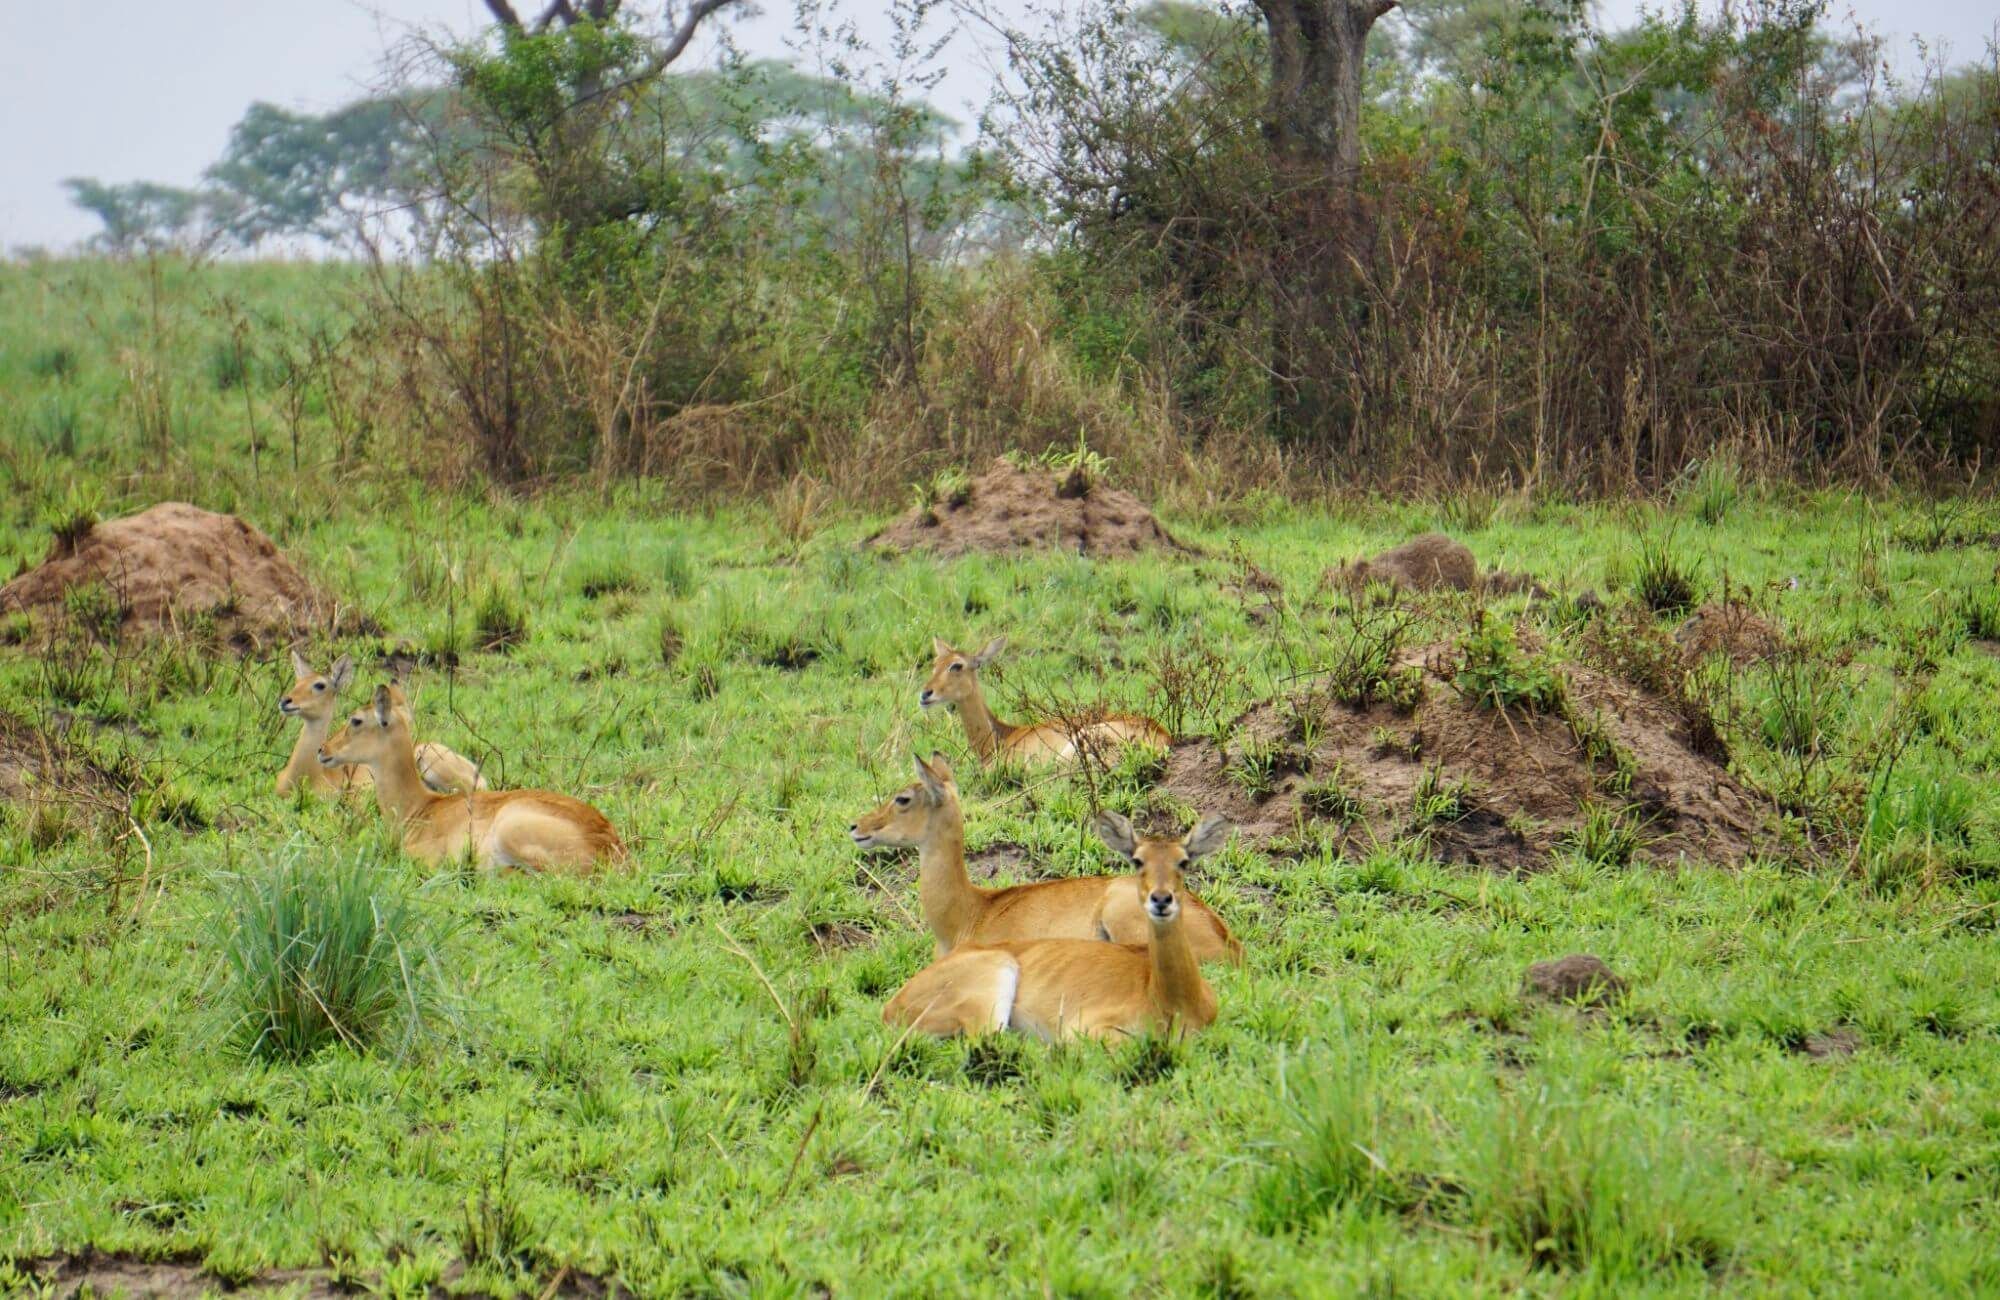 Animals in Queen Elizabeth National Park Uganda